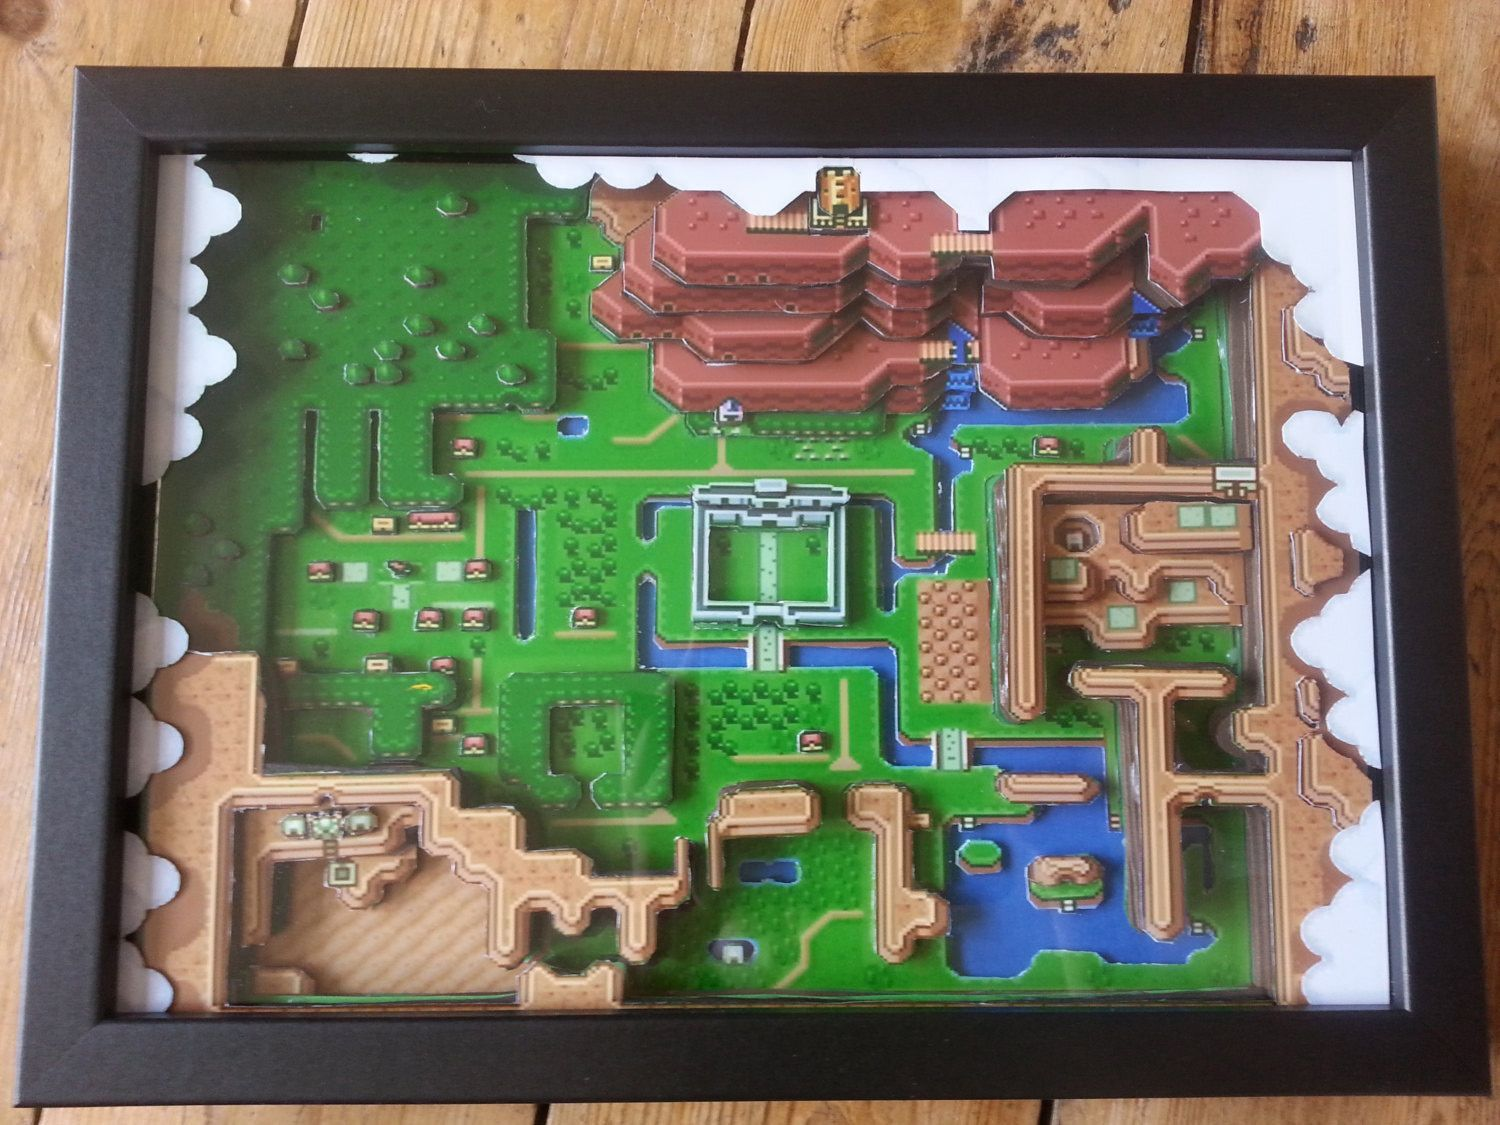 Legend Of Zelda A Link To The Past Hyrule Map 3d Paper Diorama A4 Retro Classic Video Game Art Game Art Decoracao Sala Geek Diorama Ideas for zelda link to past map